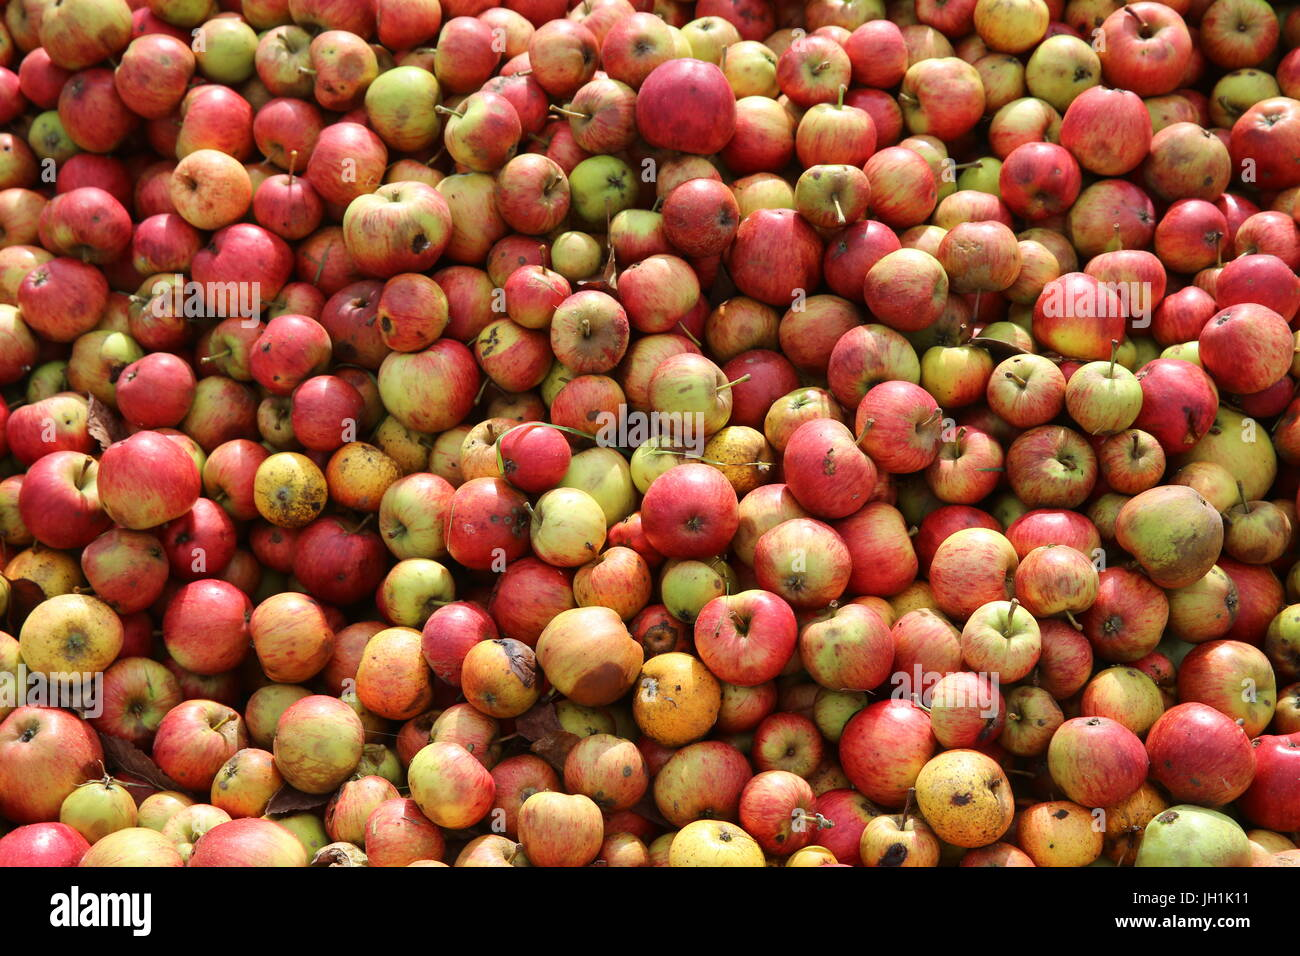 Apples. France. - Stock Image